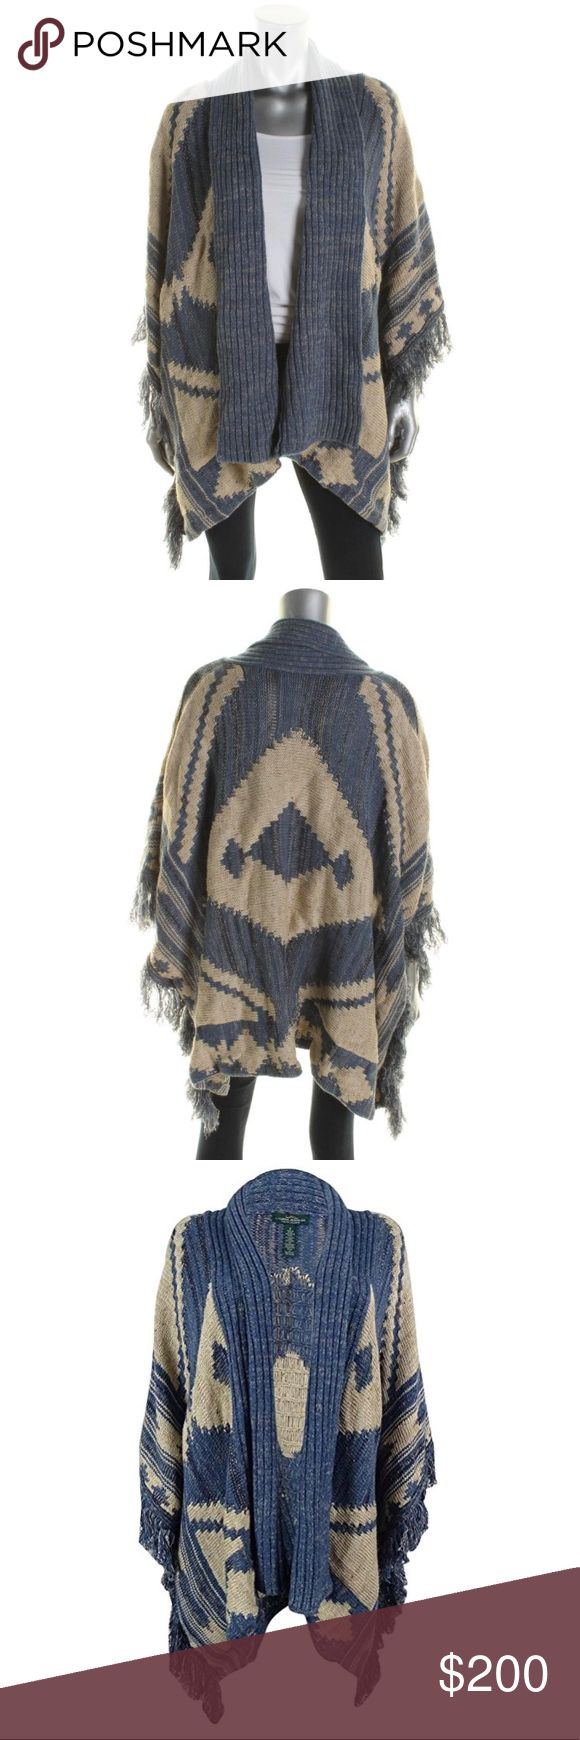 "Lauren Ralph Lauren Indigo Knit Open-Front Sweater NWT Lauren by Ralph Lauren wool blend open front poncho style cardigan sweater. Fringe trim. size Large. Color is Indigo Multi Retail: $325.00 Bust: 40 Inches  Details A bold Southwestern-inspired pattern and fringed trim create an eclectic style you'll love when the temperature dips. Pair it with a skinny pant for a look that's stylish and casual. Open front Ribbed trim Three-quarter kimono sleeves Fringed trim About 26"" from shoulder to…"